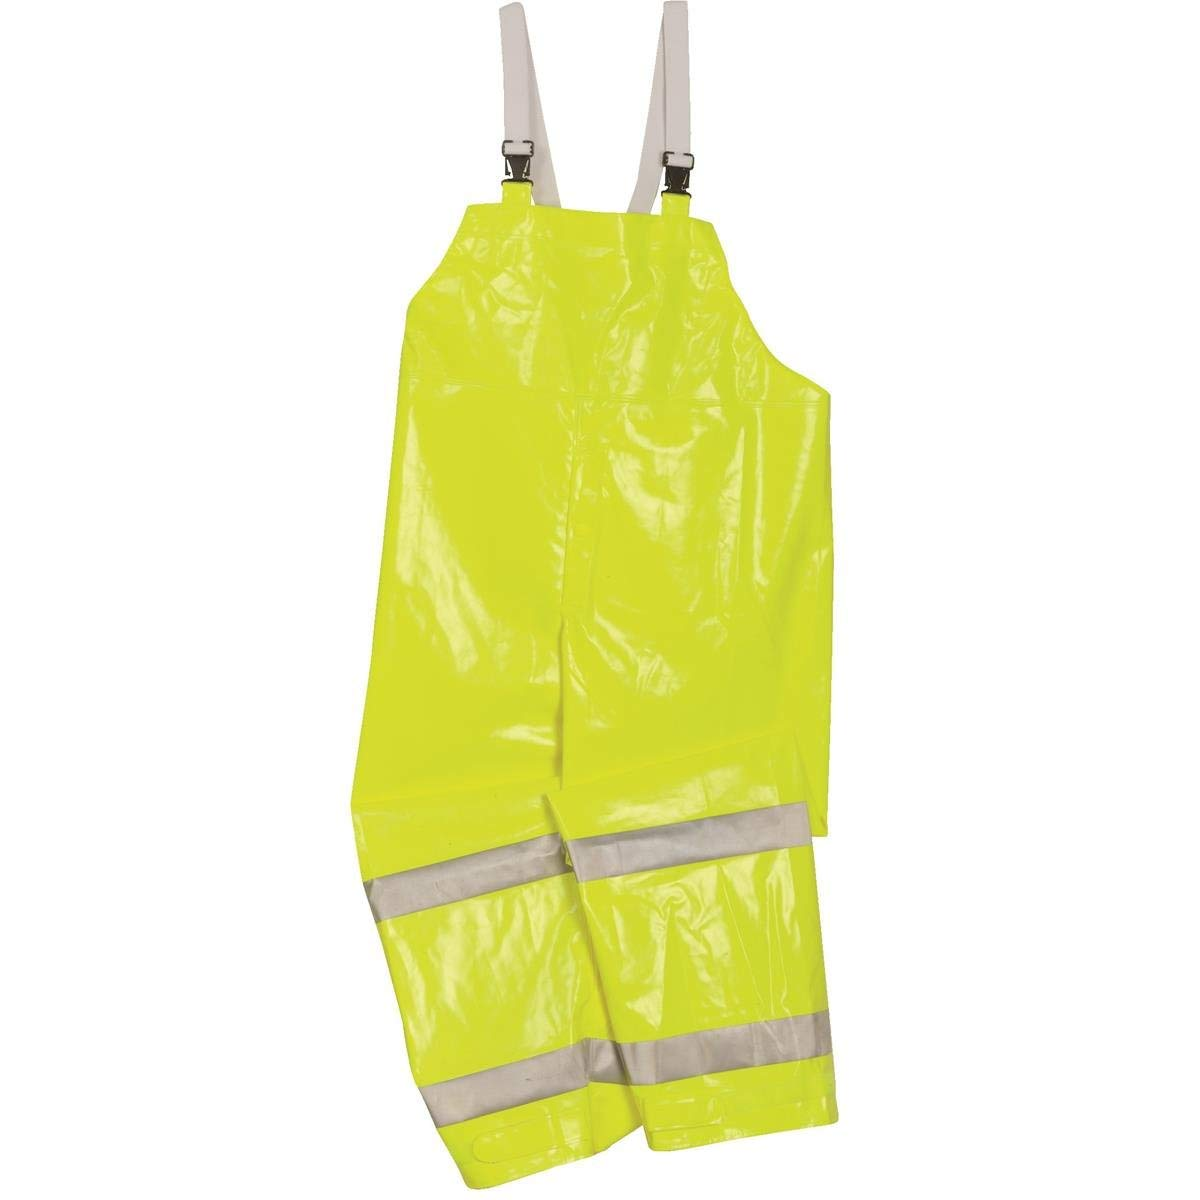 Brite Safety Style 5213 FR Safety Raingear - Hi Vis Bib Overalls for Man and Woman, Rain Gear For Men Waterproof, Flame Resistant, ANSI 107 Class E Compliant (5X-Large, Hi Vis Yellow)